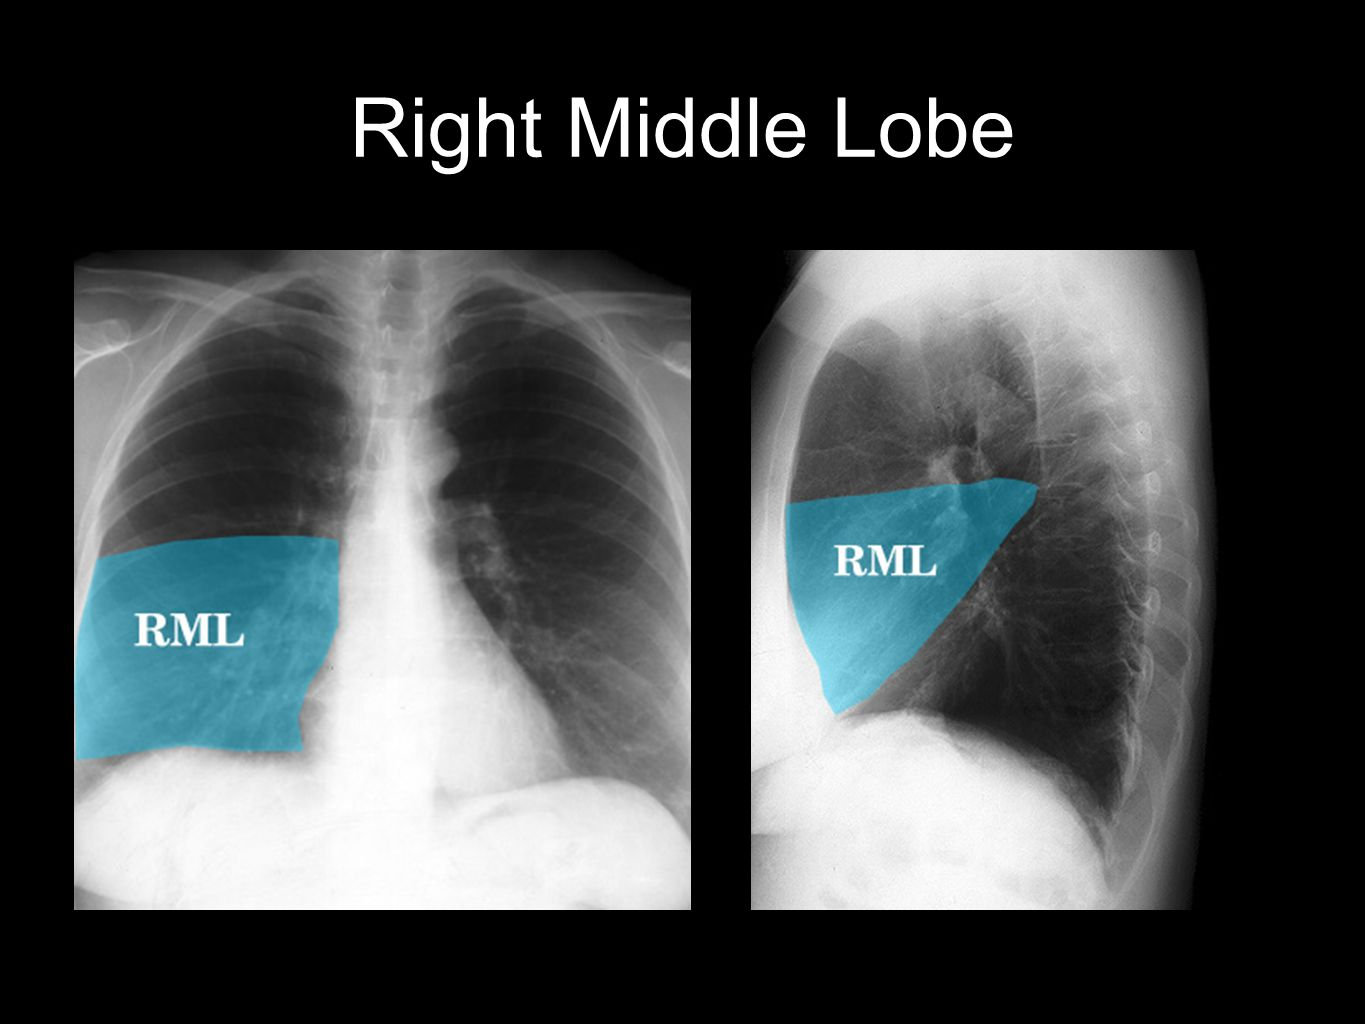 Right Middle Lobe